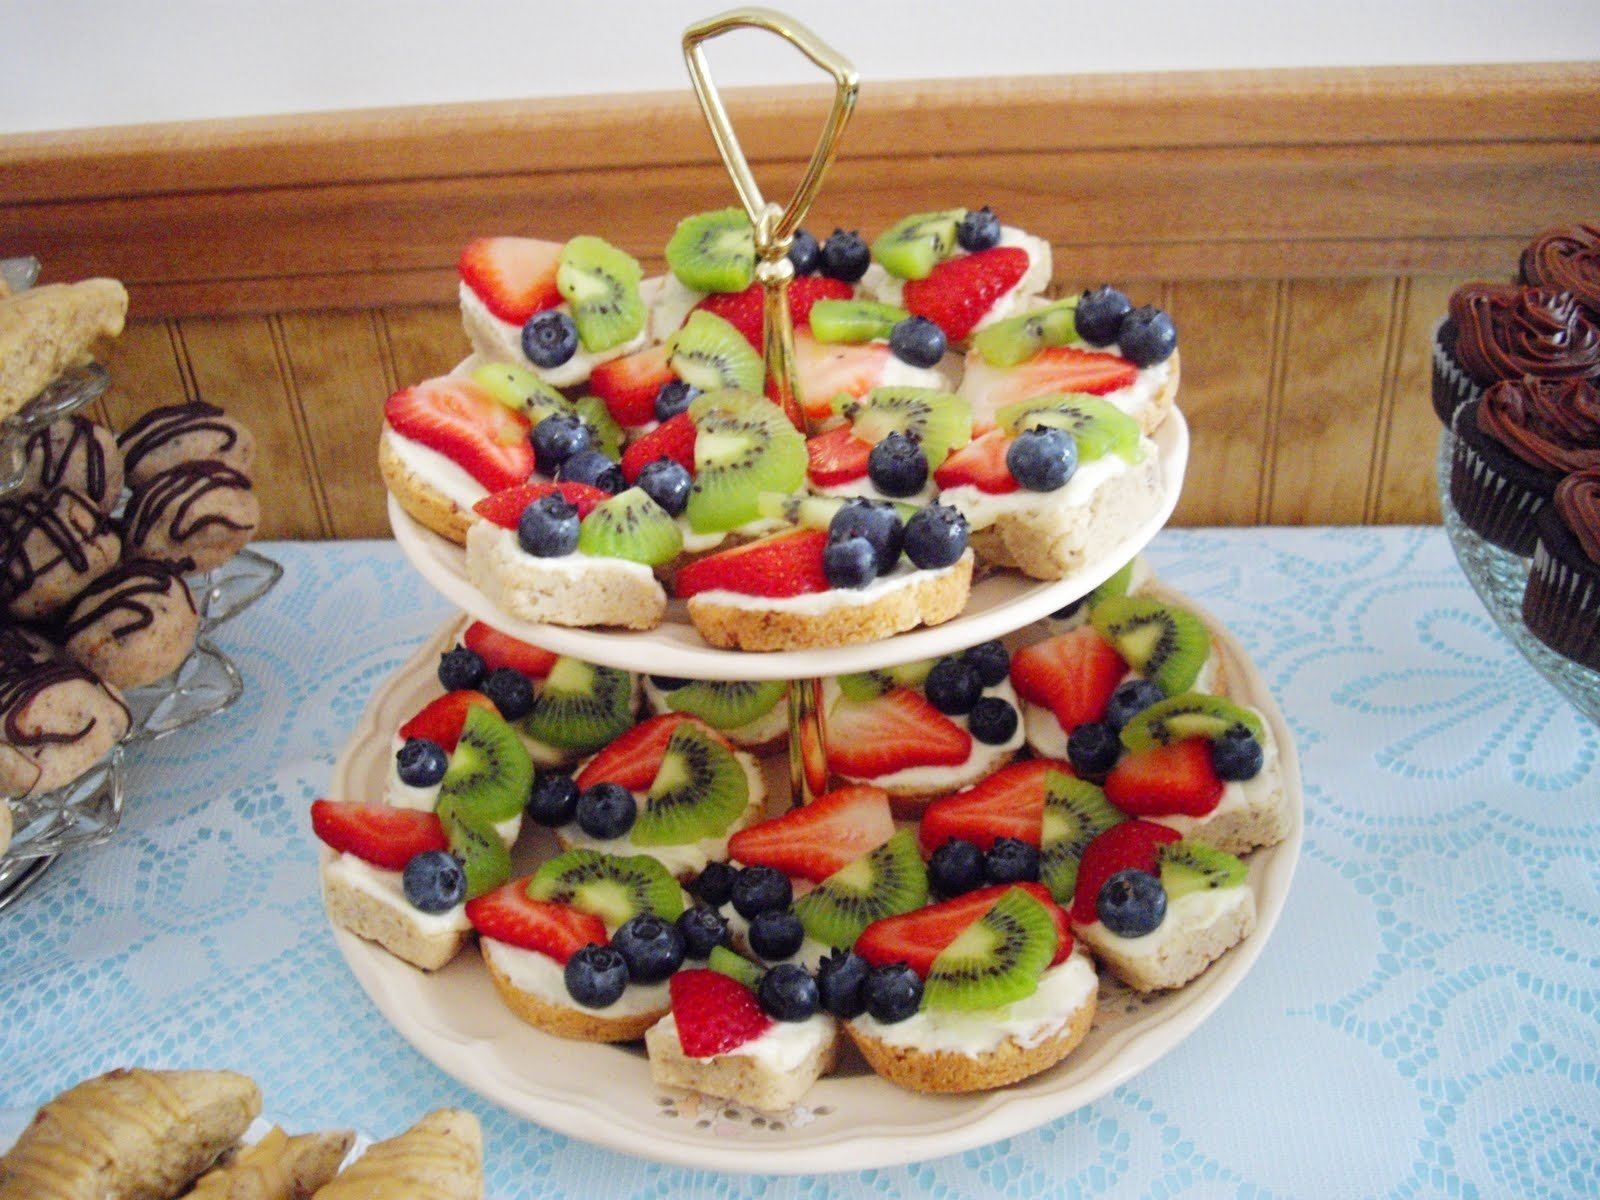 10 Most Recommended Bridal Shower Finger Food Ideas mexican wedding fruit pizza and a bridal shower cooking ala mel 1 2021